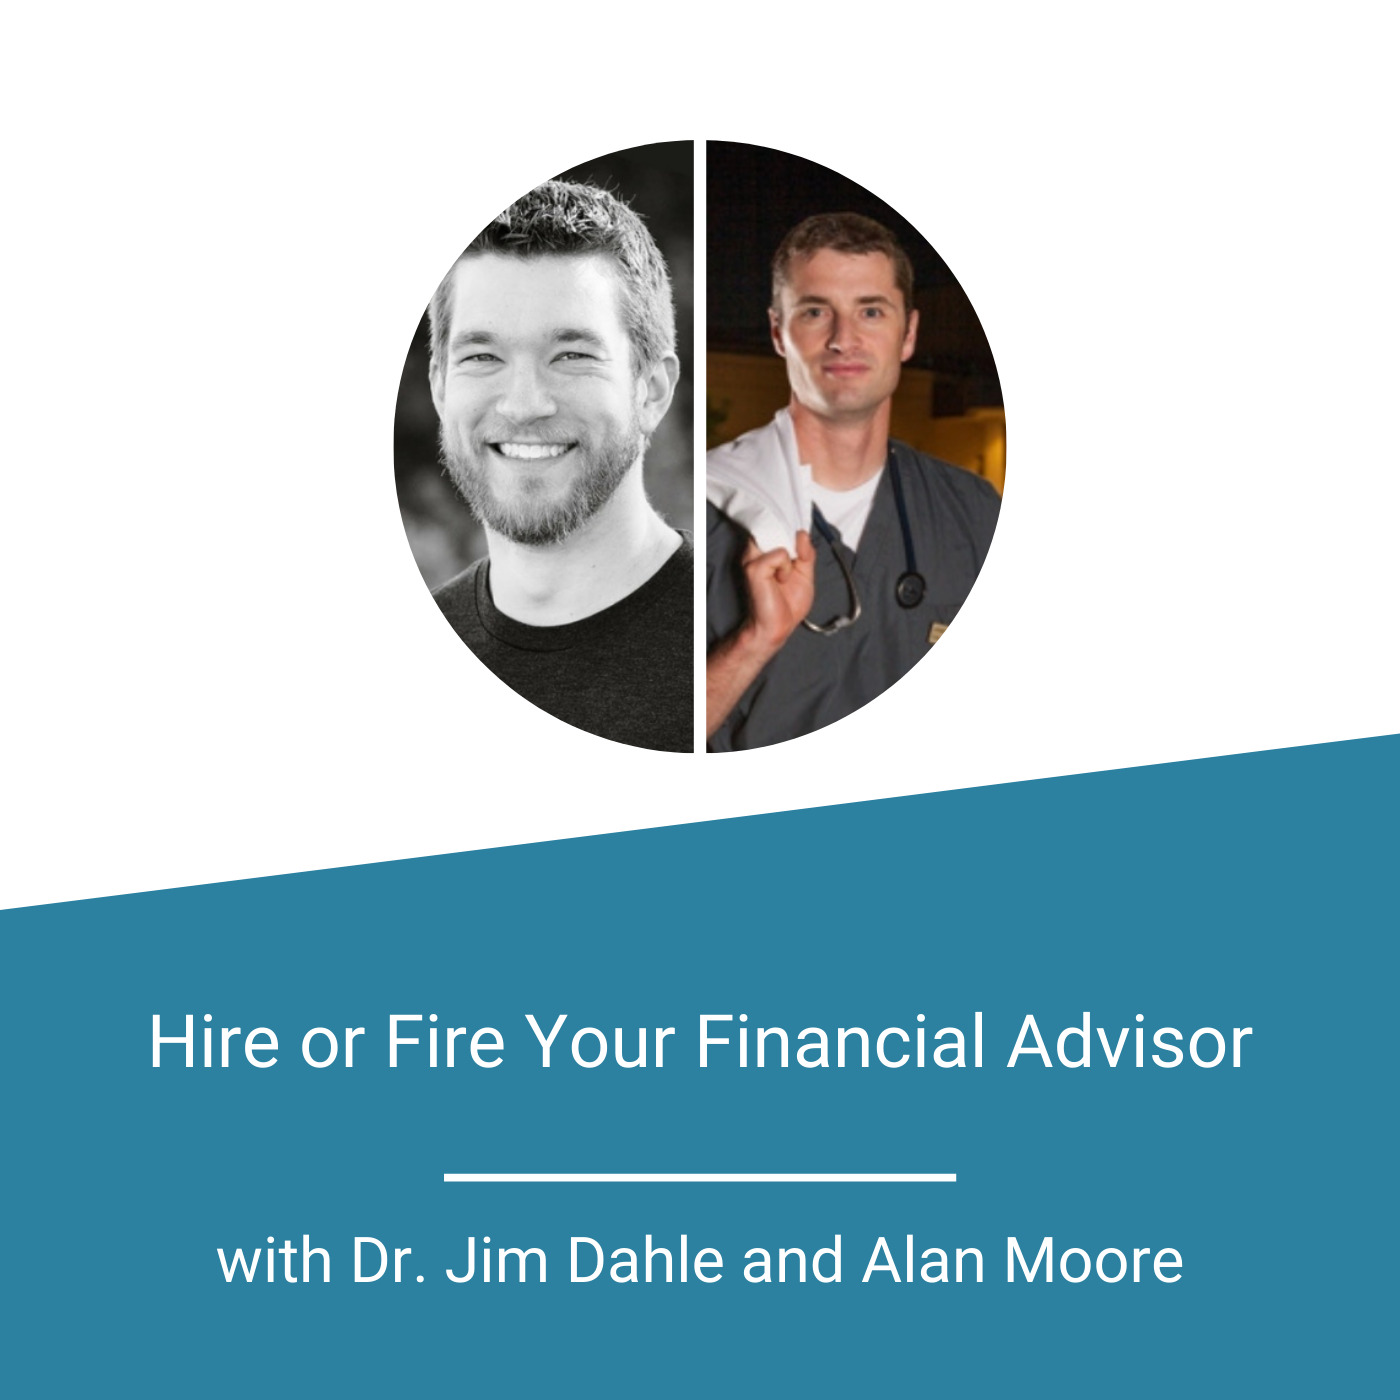 Featured Image - Hire or Fire Your Financial Advisor with Dr. Jim Dahle and Alan Moore